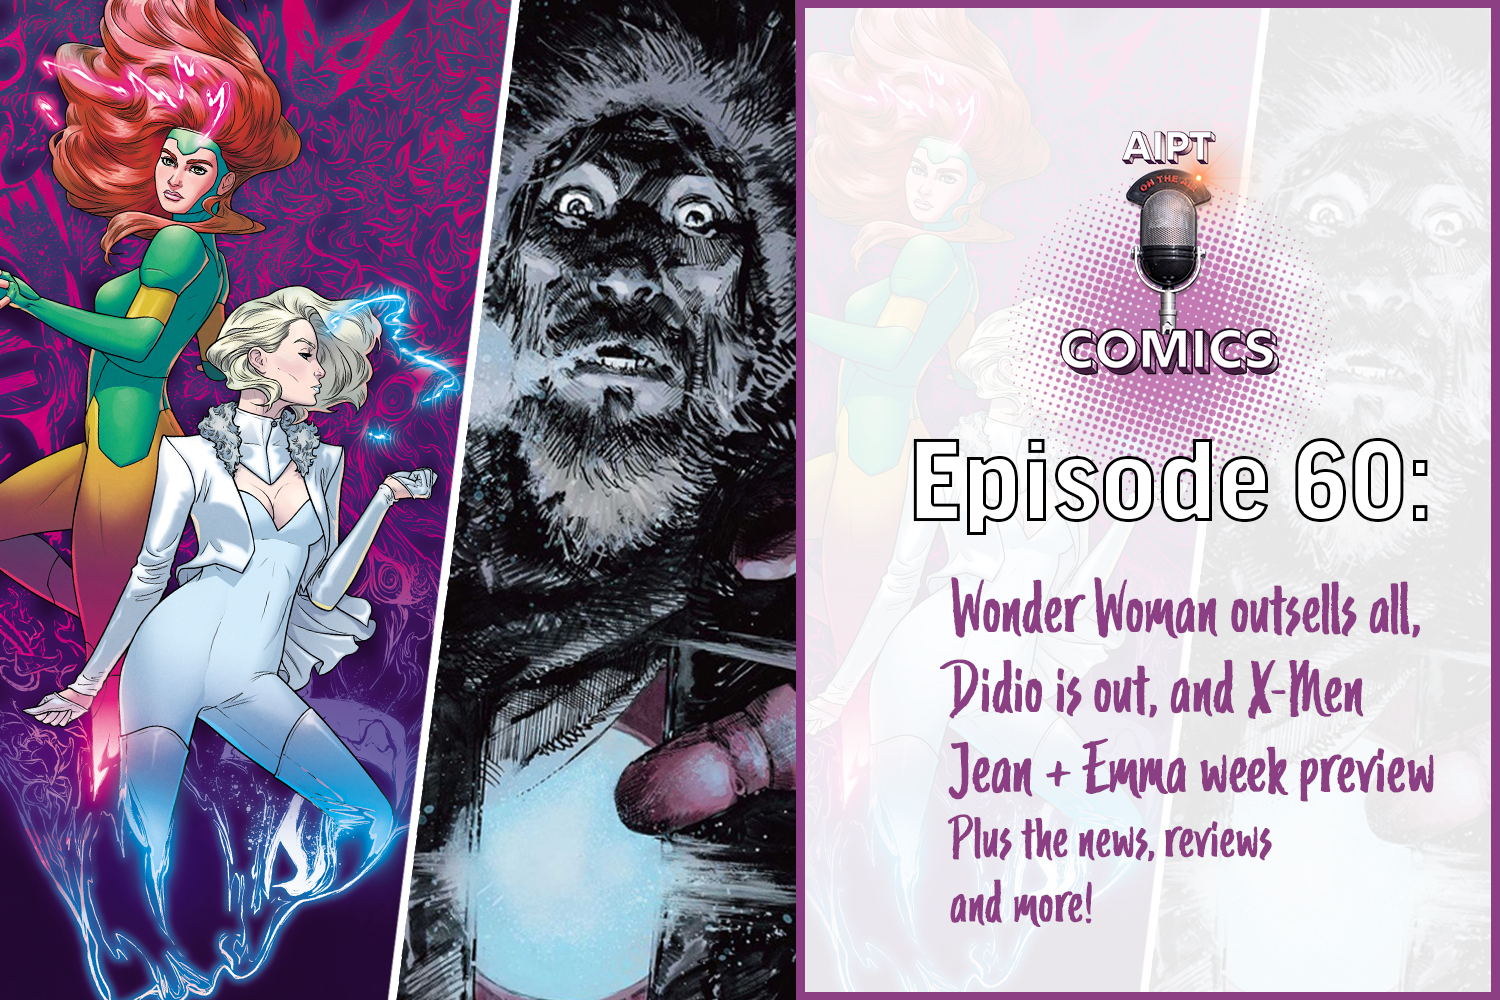 AIPT Comics Podcast Episode 60: Wonder Woman makes history, Didio is out, and a Jean + Emma preview